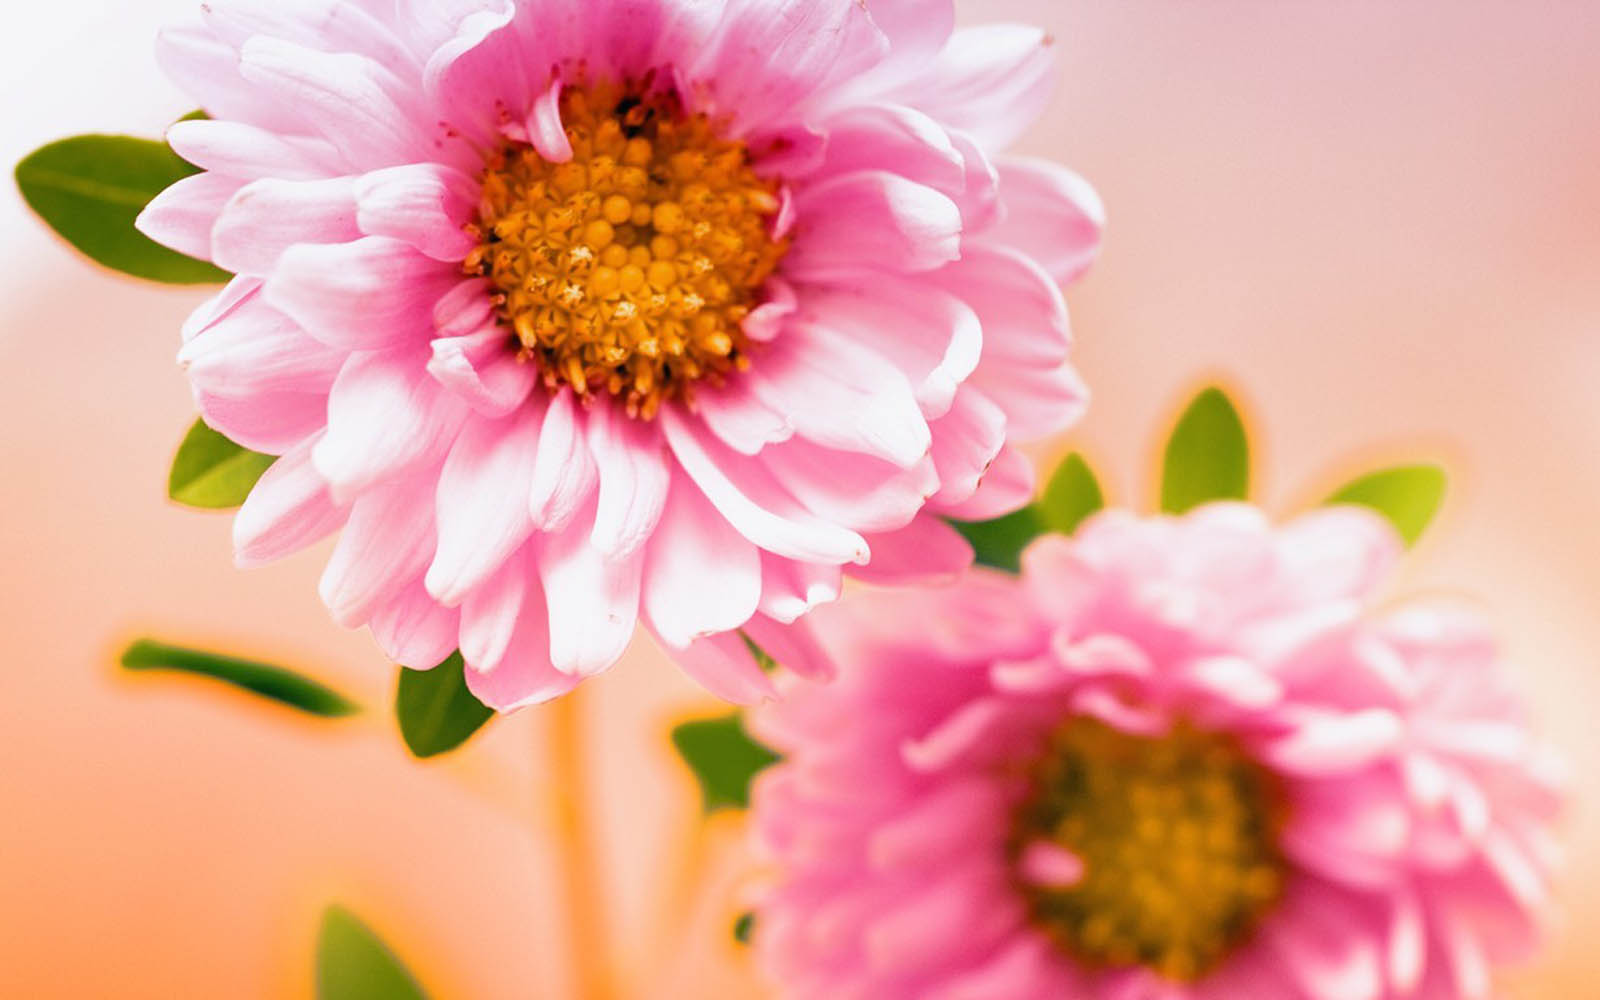 Love Wallpaper Pictures Pictures Of Pink Flowers